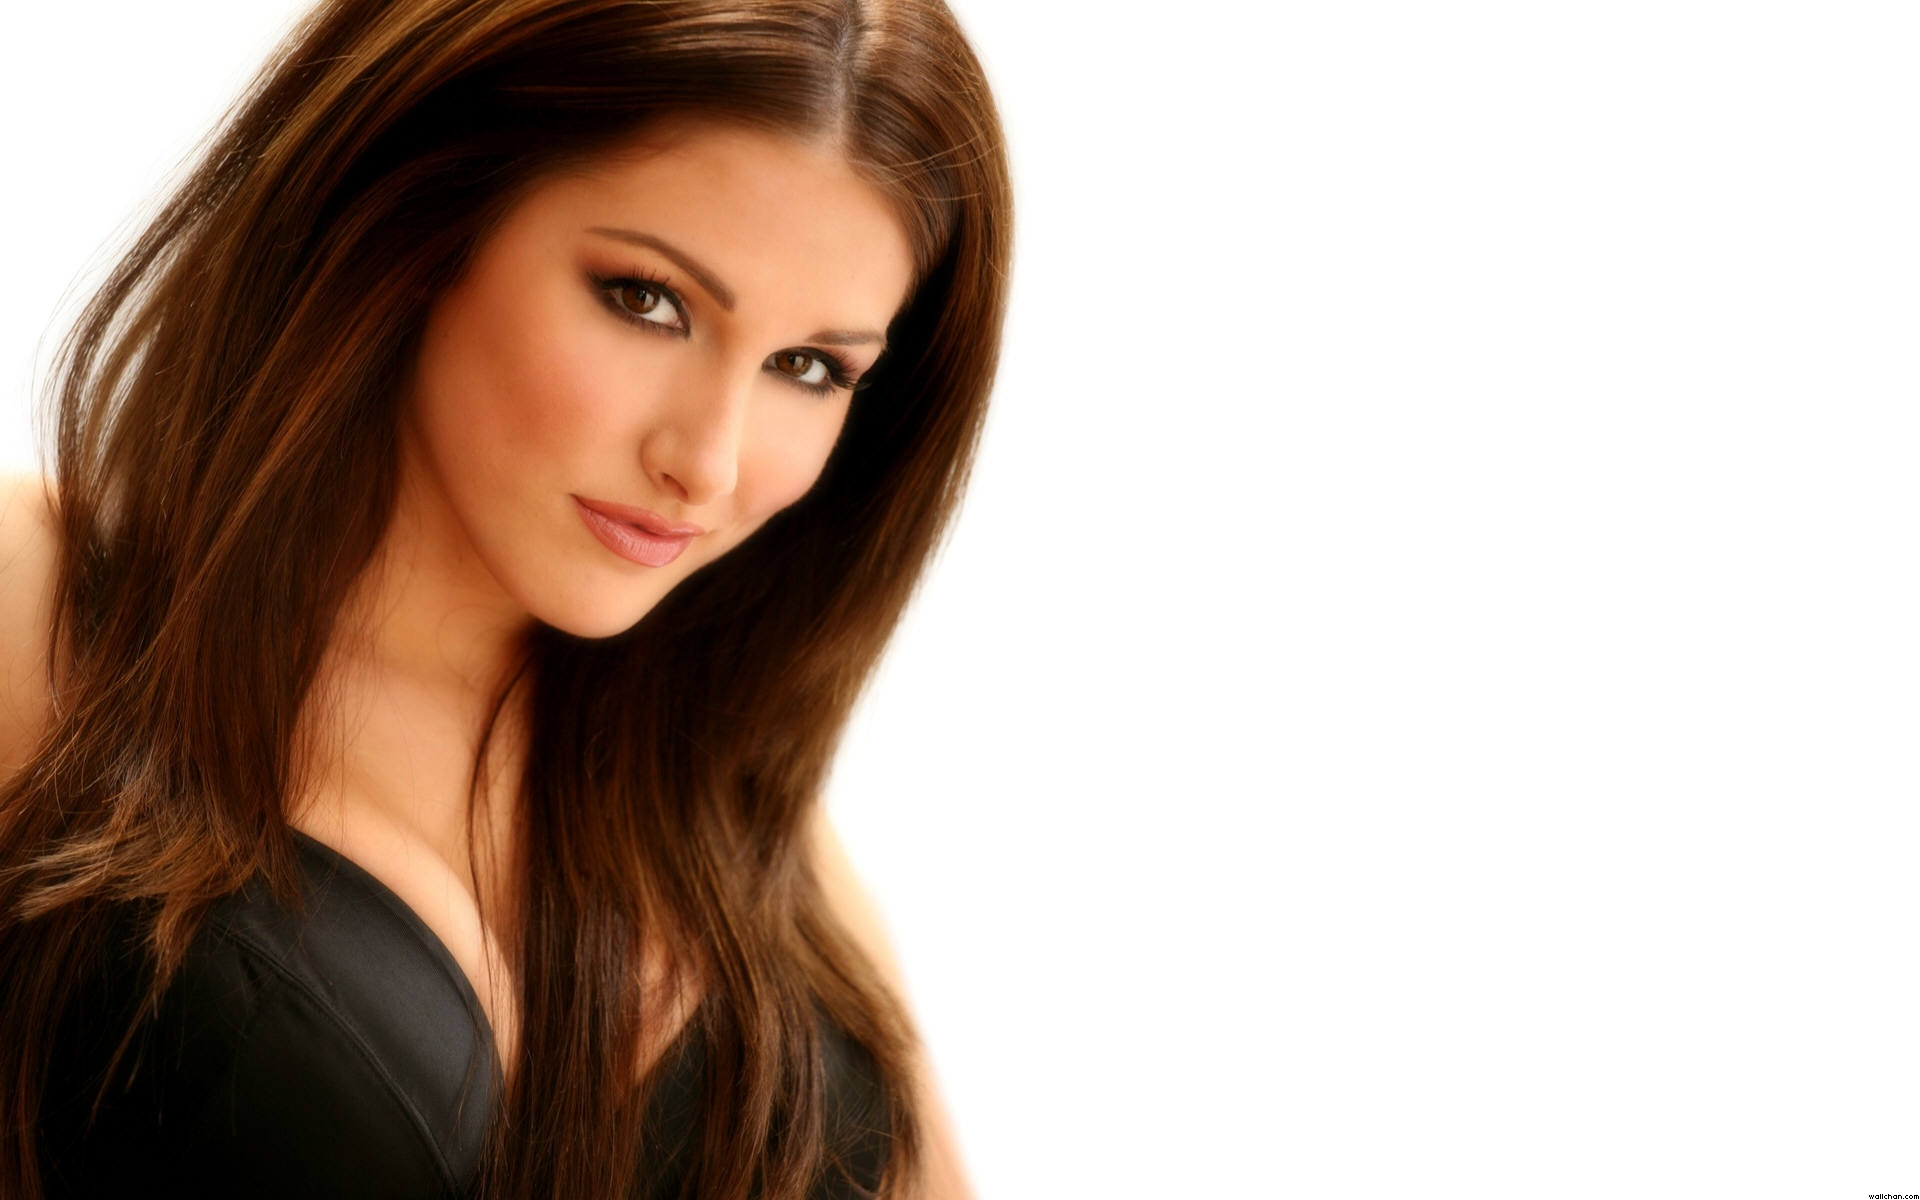 Amazon.com: Lucy Pinder: Appstore for Android